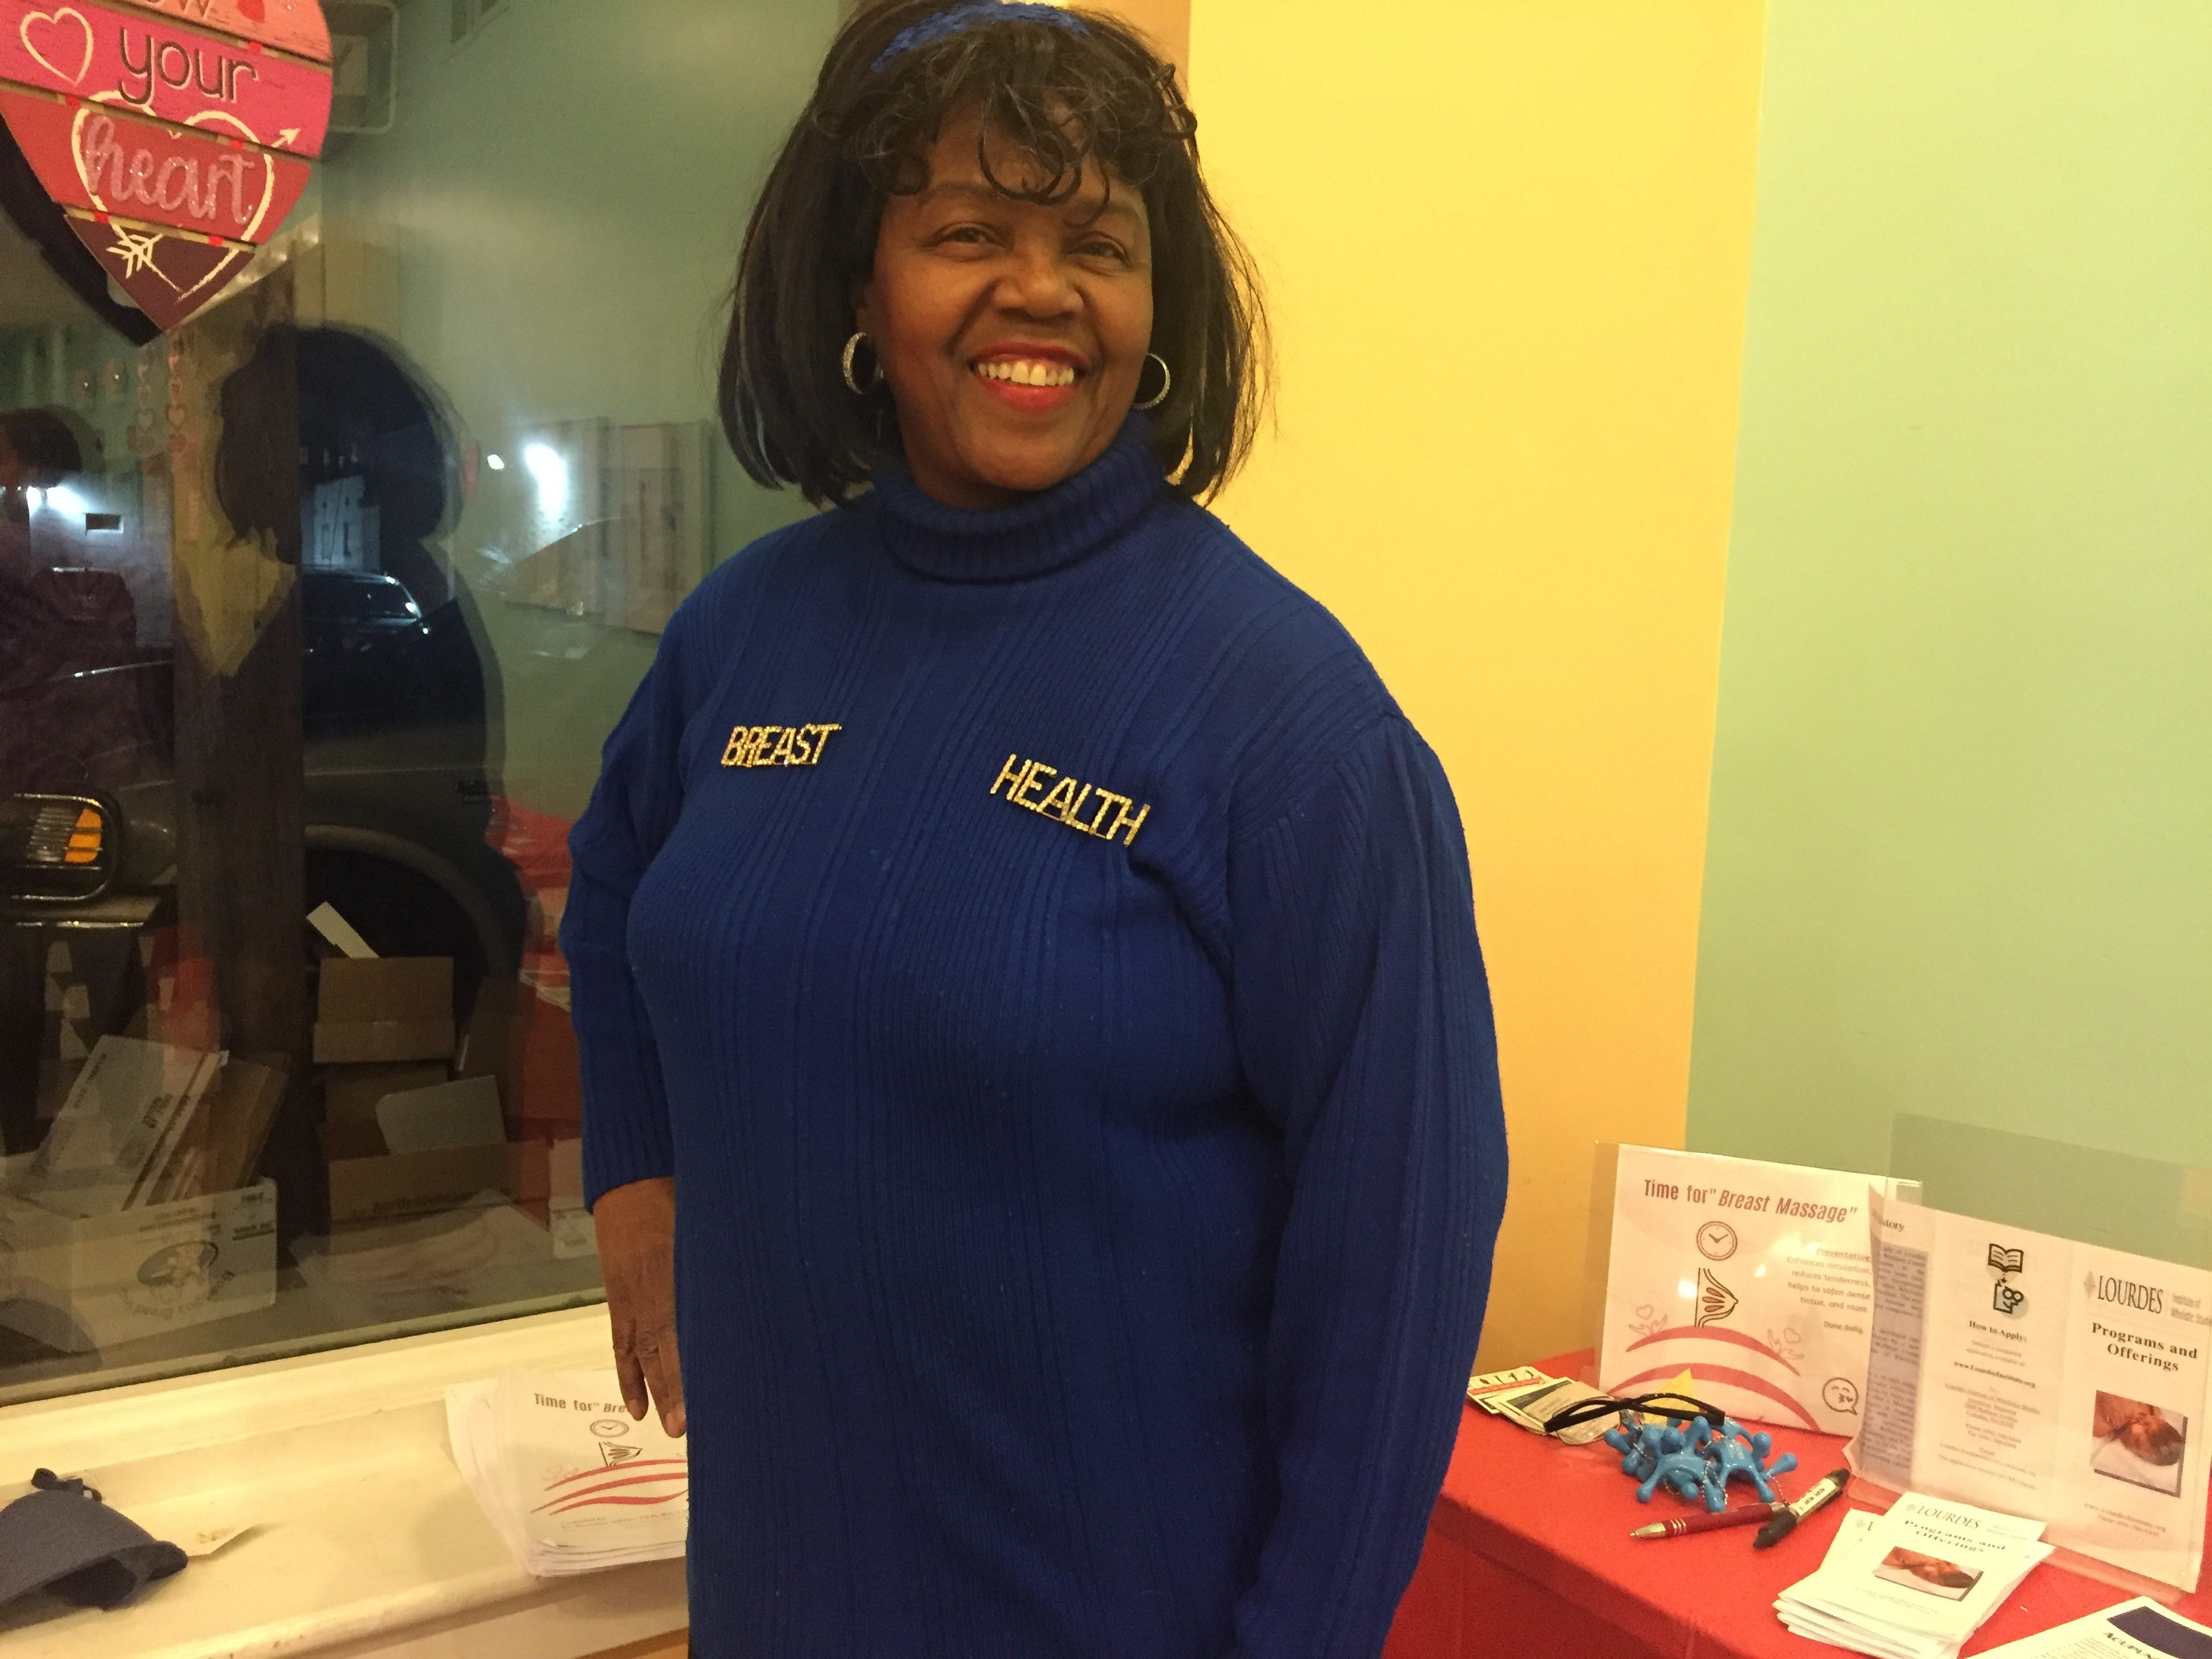 Dorothea Atkinson, a massage therapist and researcher at Lourdes Wellness Center, urged women to practice self-care during the second annual Galentine's Day event at The Pop Shoppe in Collingswood on Thursday, Feb. 28, 2019.